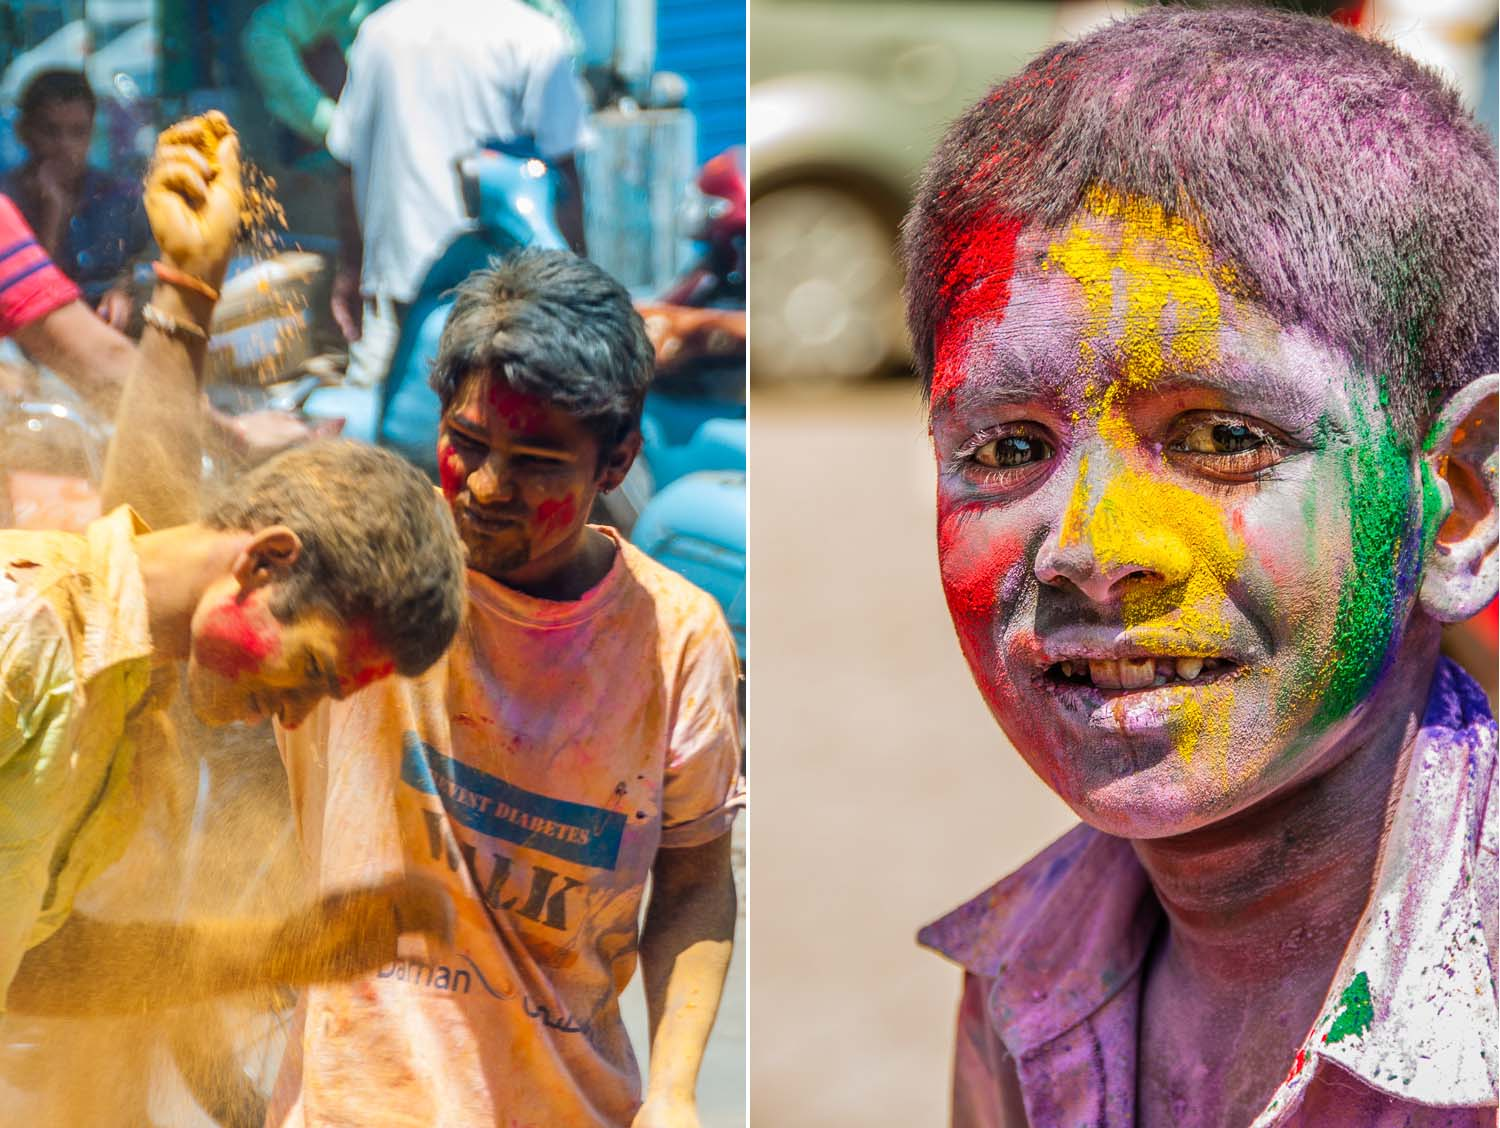 Holi playing with colors